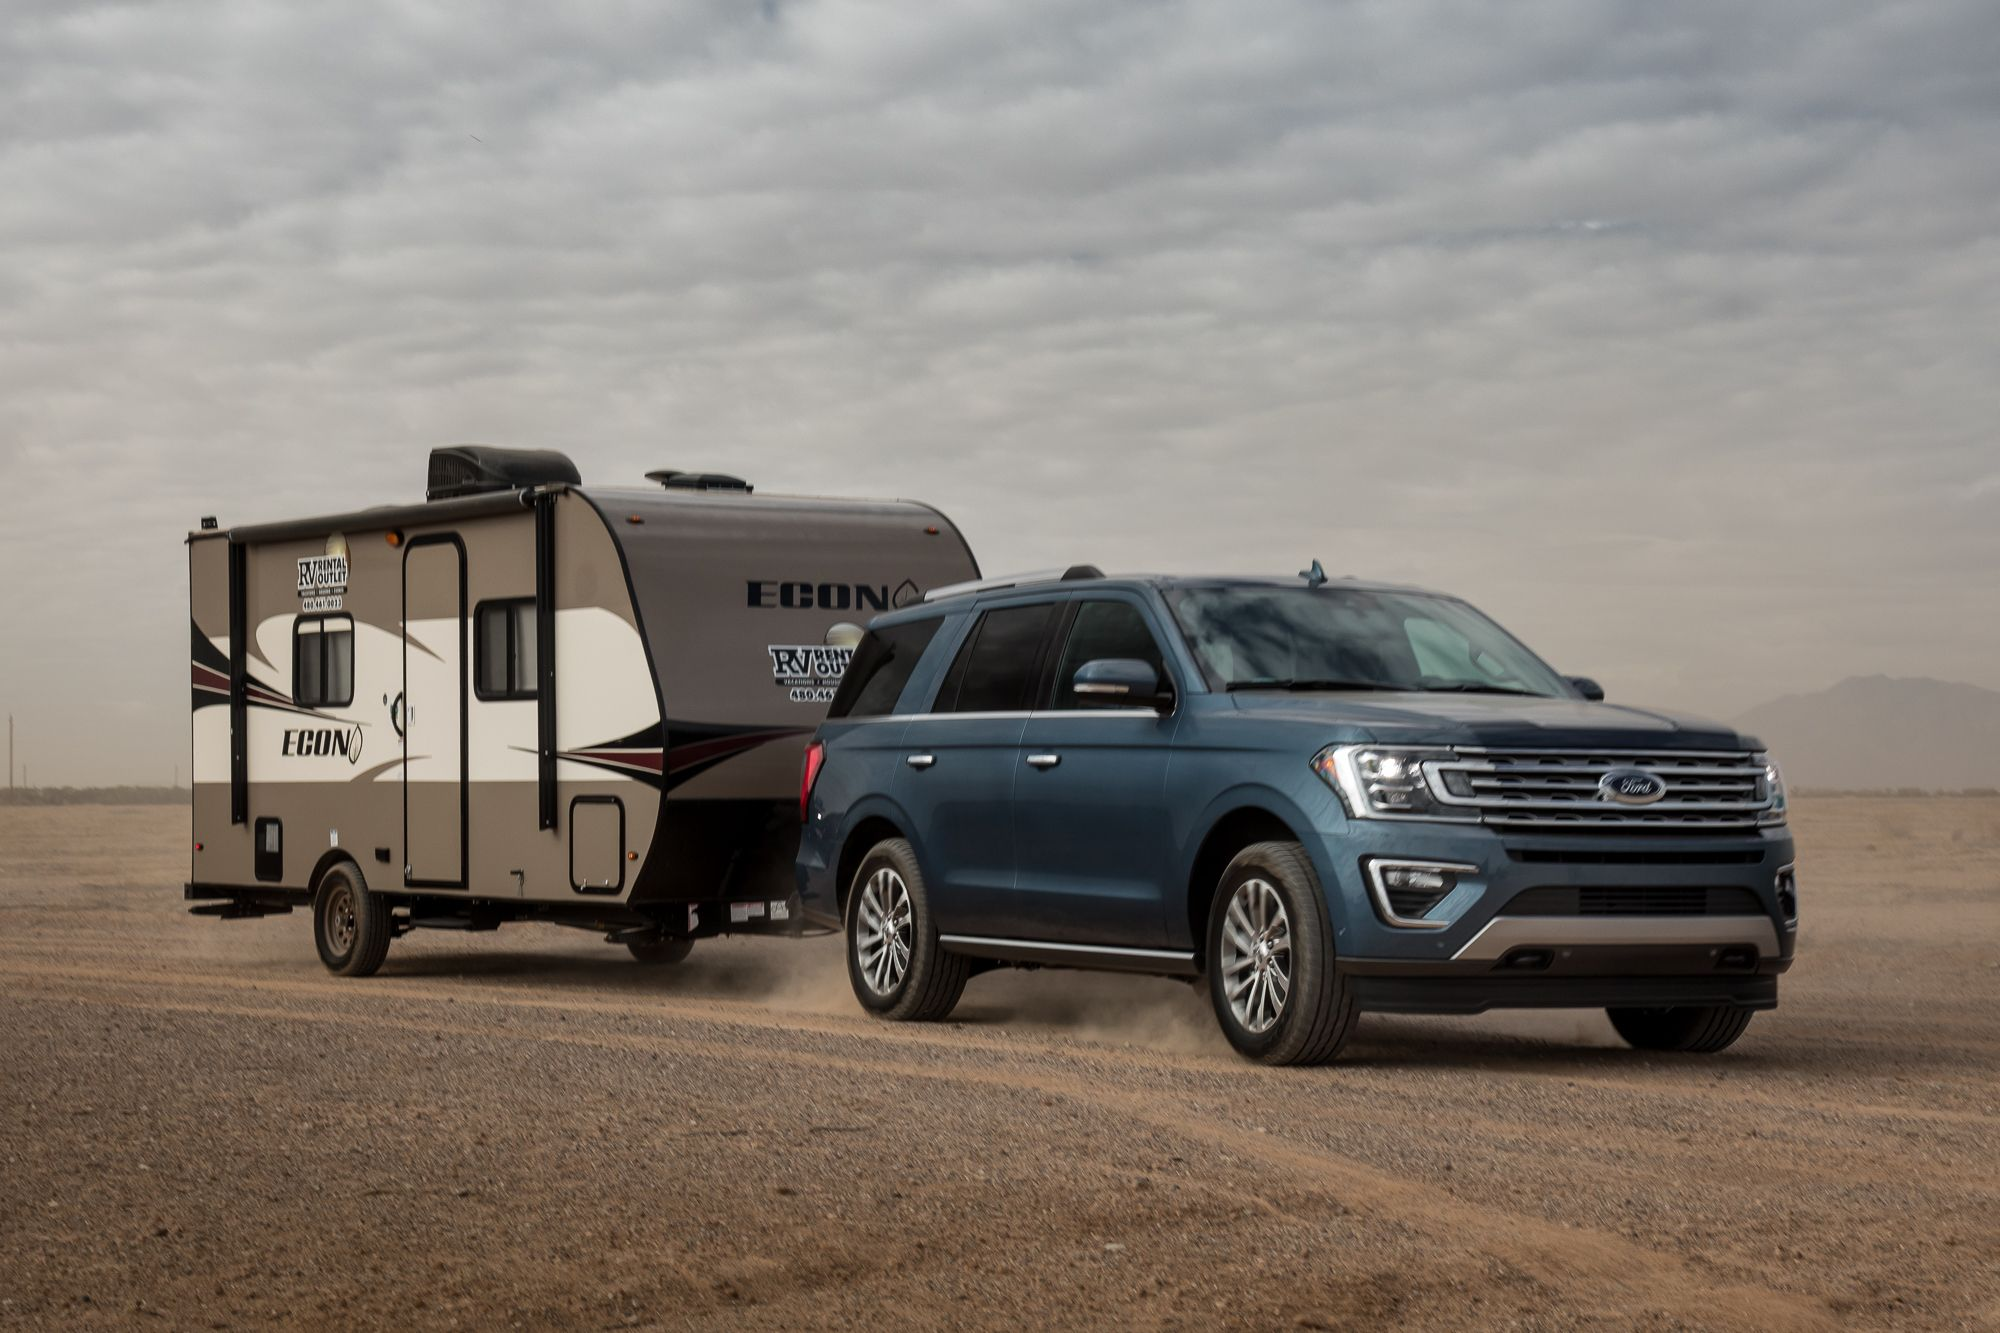 2018 Ford Expedition Bests Rivals In Crash Tests News From Cars Com In 2020 Ford Expedition Ford Expedition